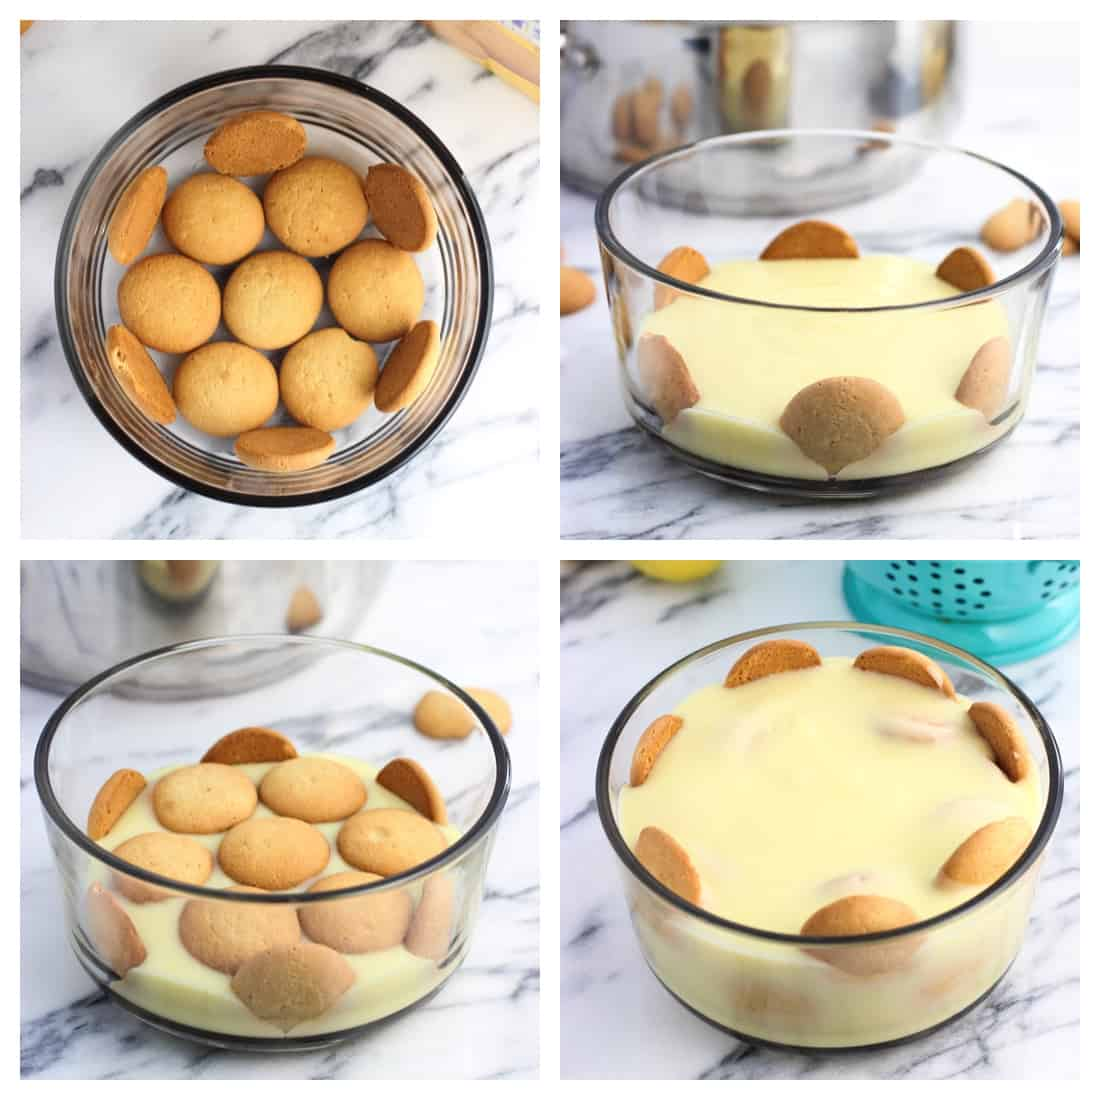 The stages of assembling lemon pudding and wafers in a glass bowl.